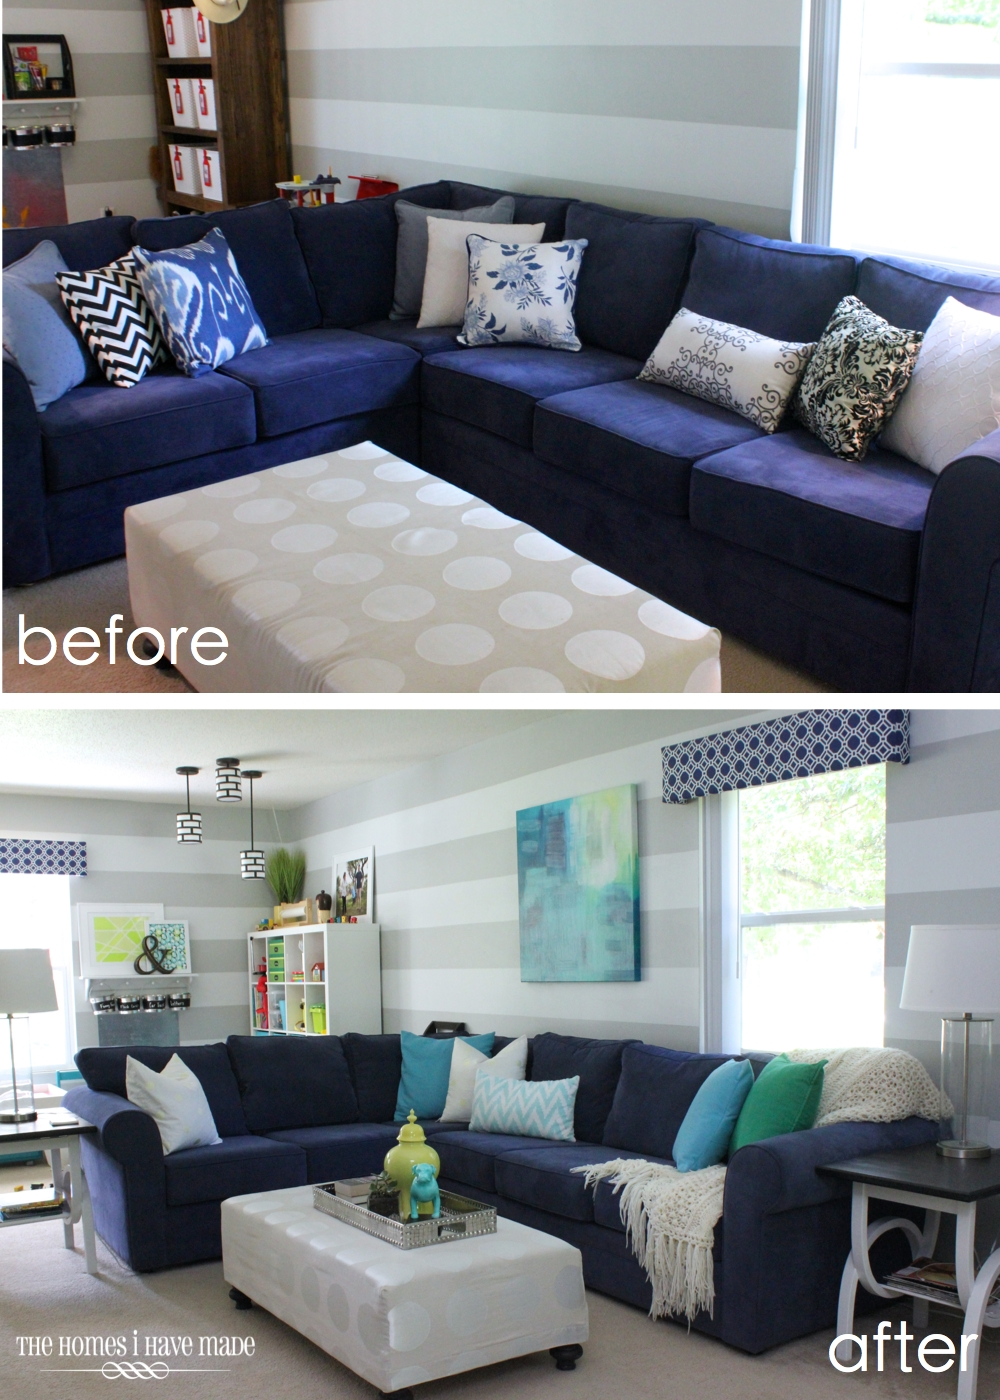 Pops of Color-Before After Family Room-ForRent.com